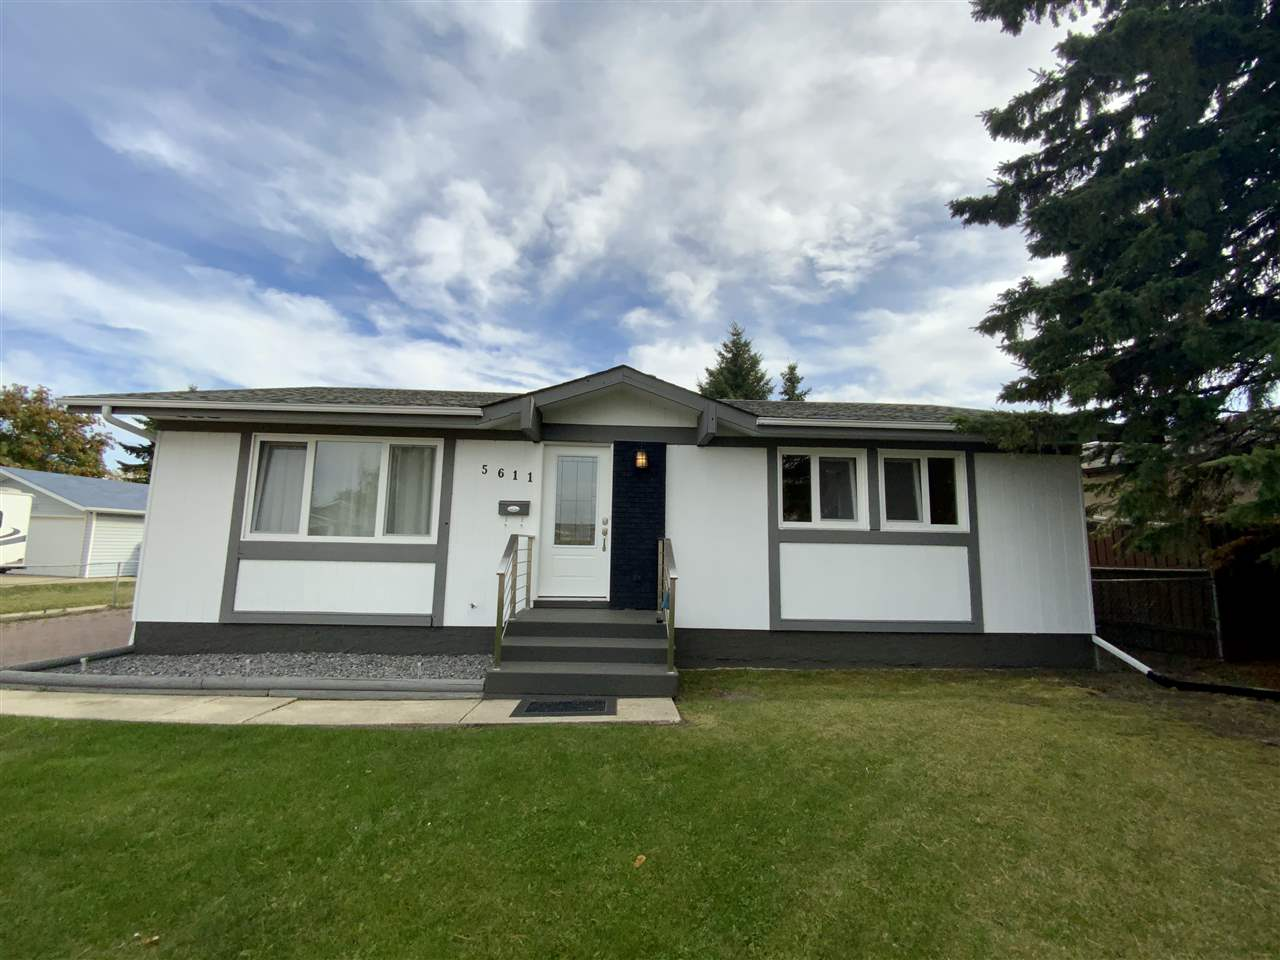 FEATURED LISTING: 5611 Garden Meadows Drive Wetaskiwin